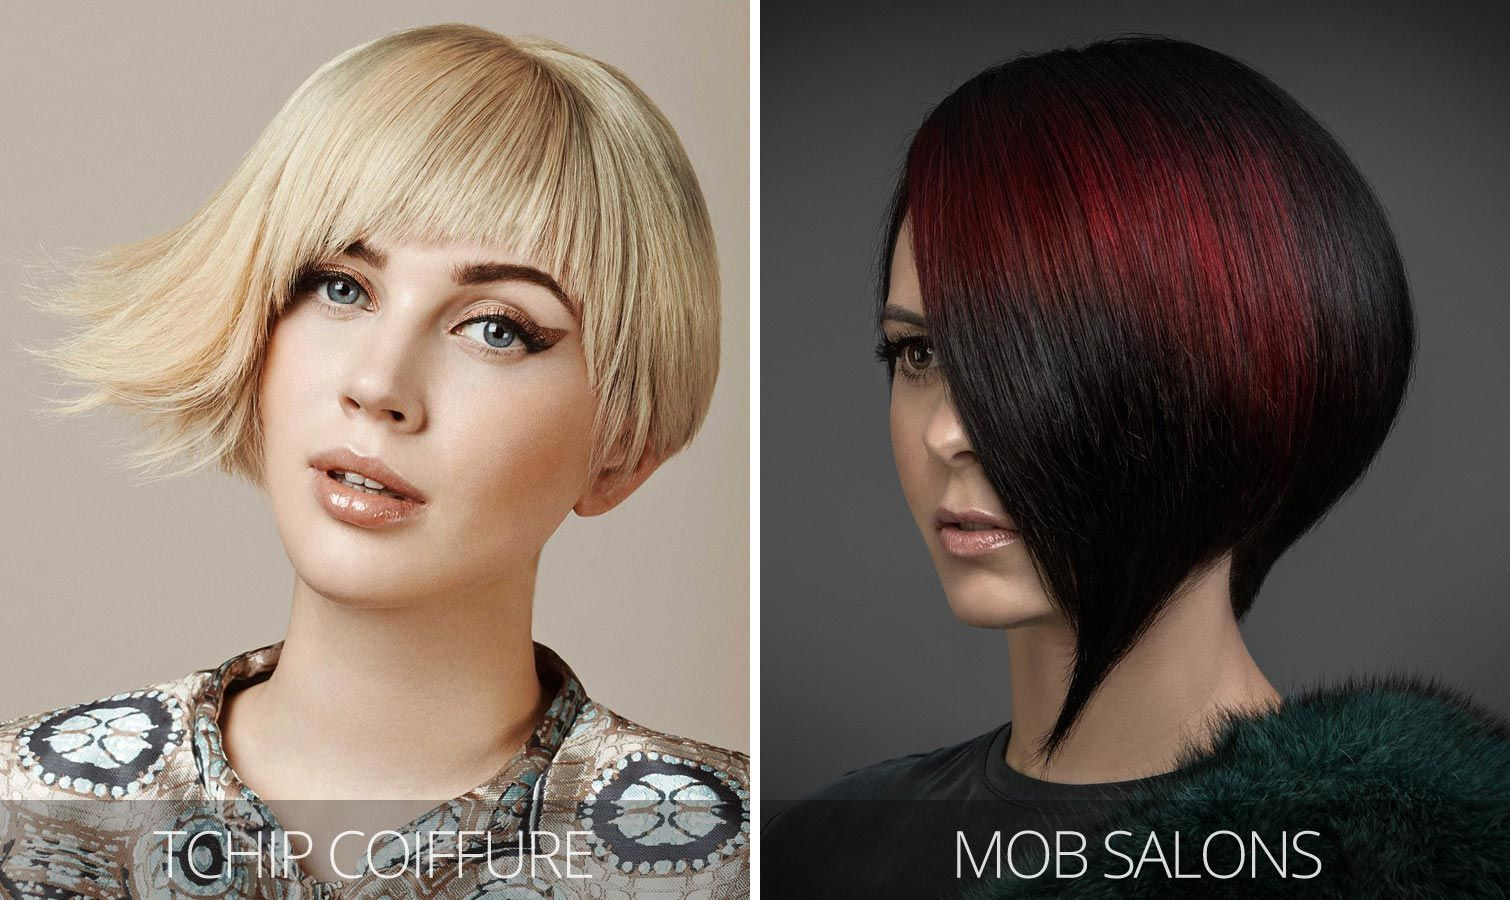 Hairstyles For Short Hair For Fall Winter 2015 2016 Hair Hairstyles Short Hair Styles 2016 Short Hair Styles Hair Styles